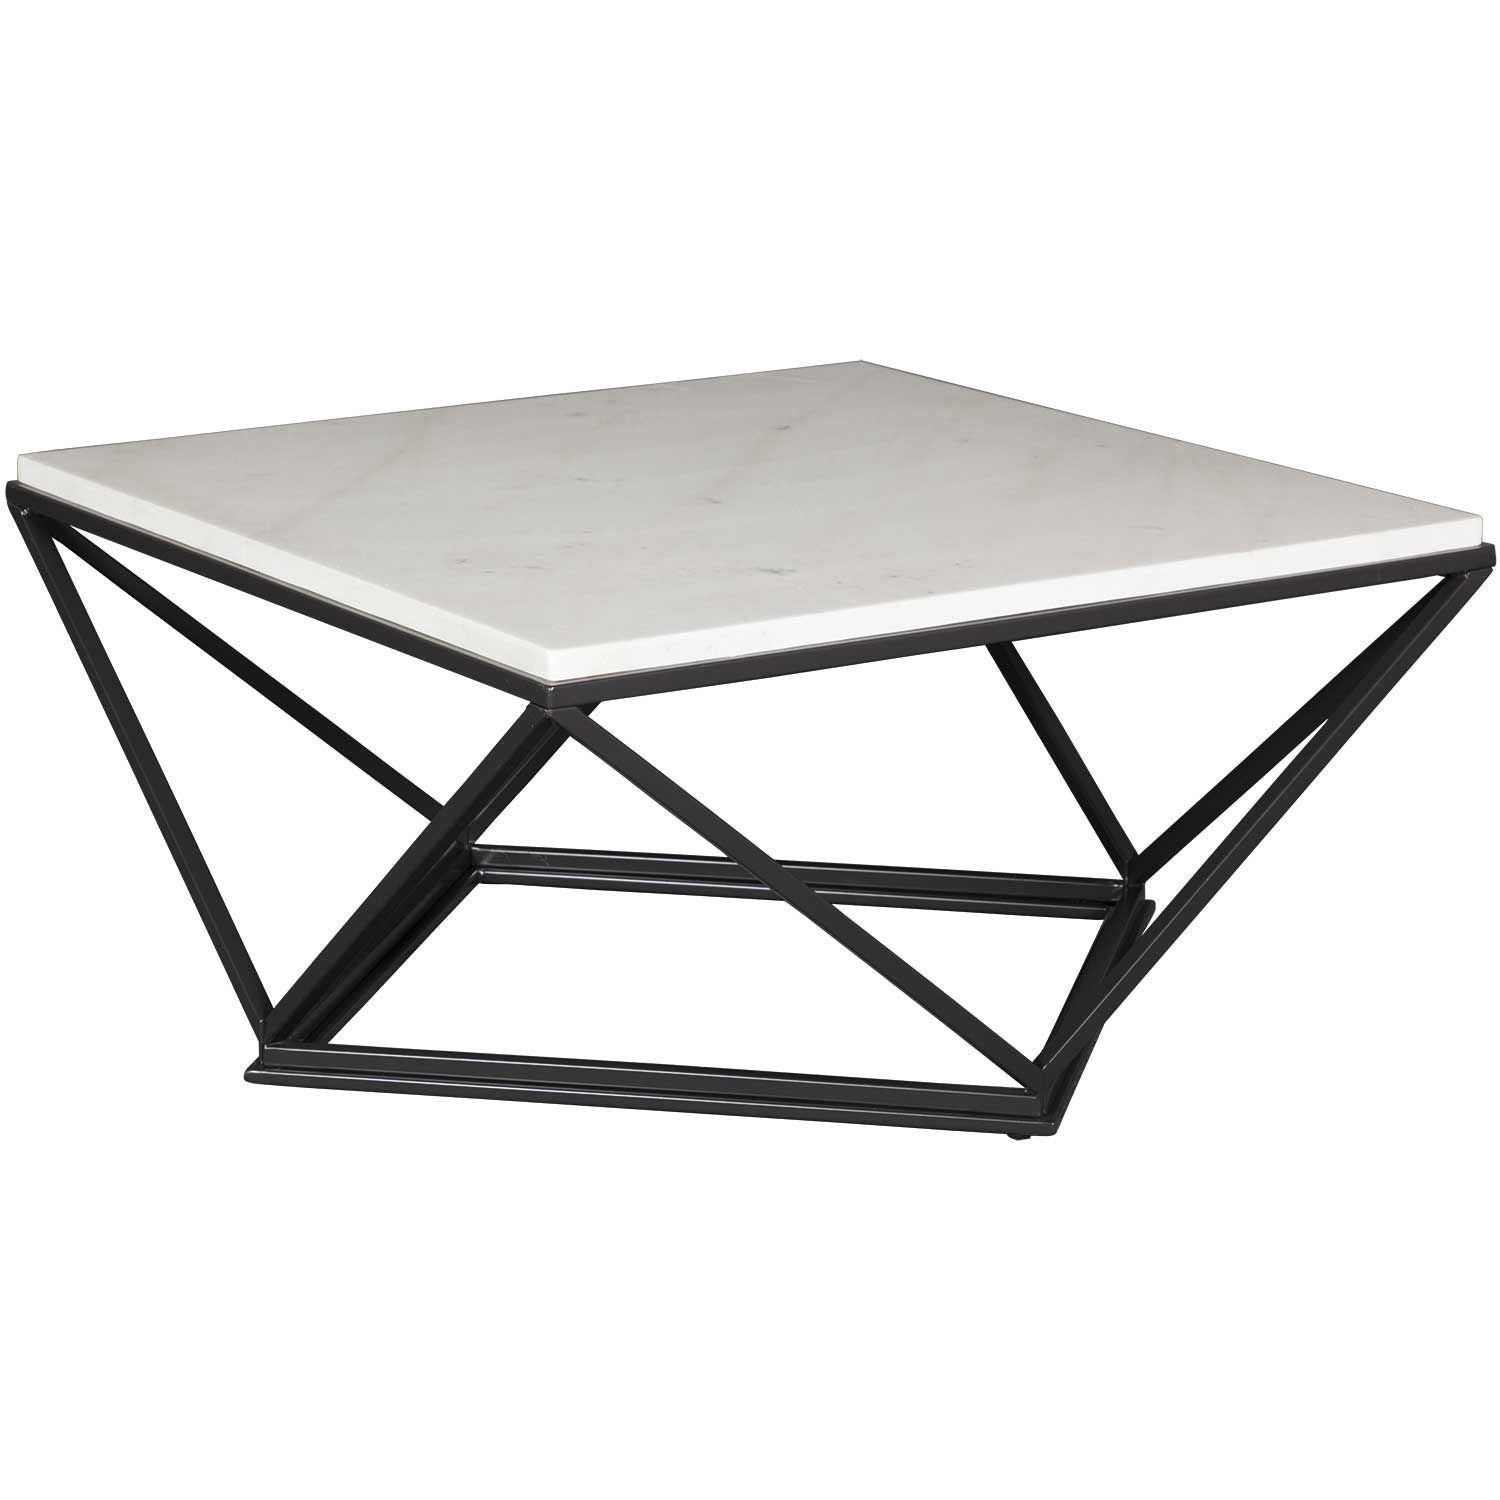 Riko Cocktail Table Square Marble Coffee Table Marble Top Coffee Table Coffee Table [ 1500 x 1500 Pixel ]